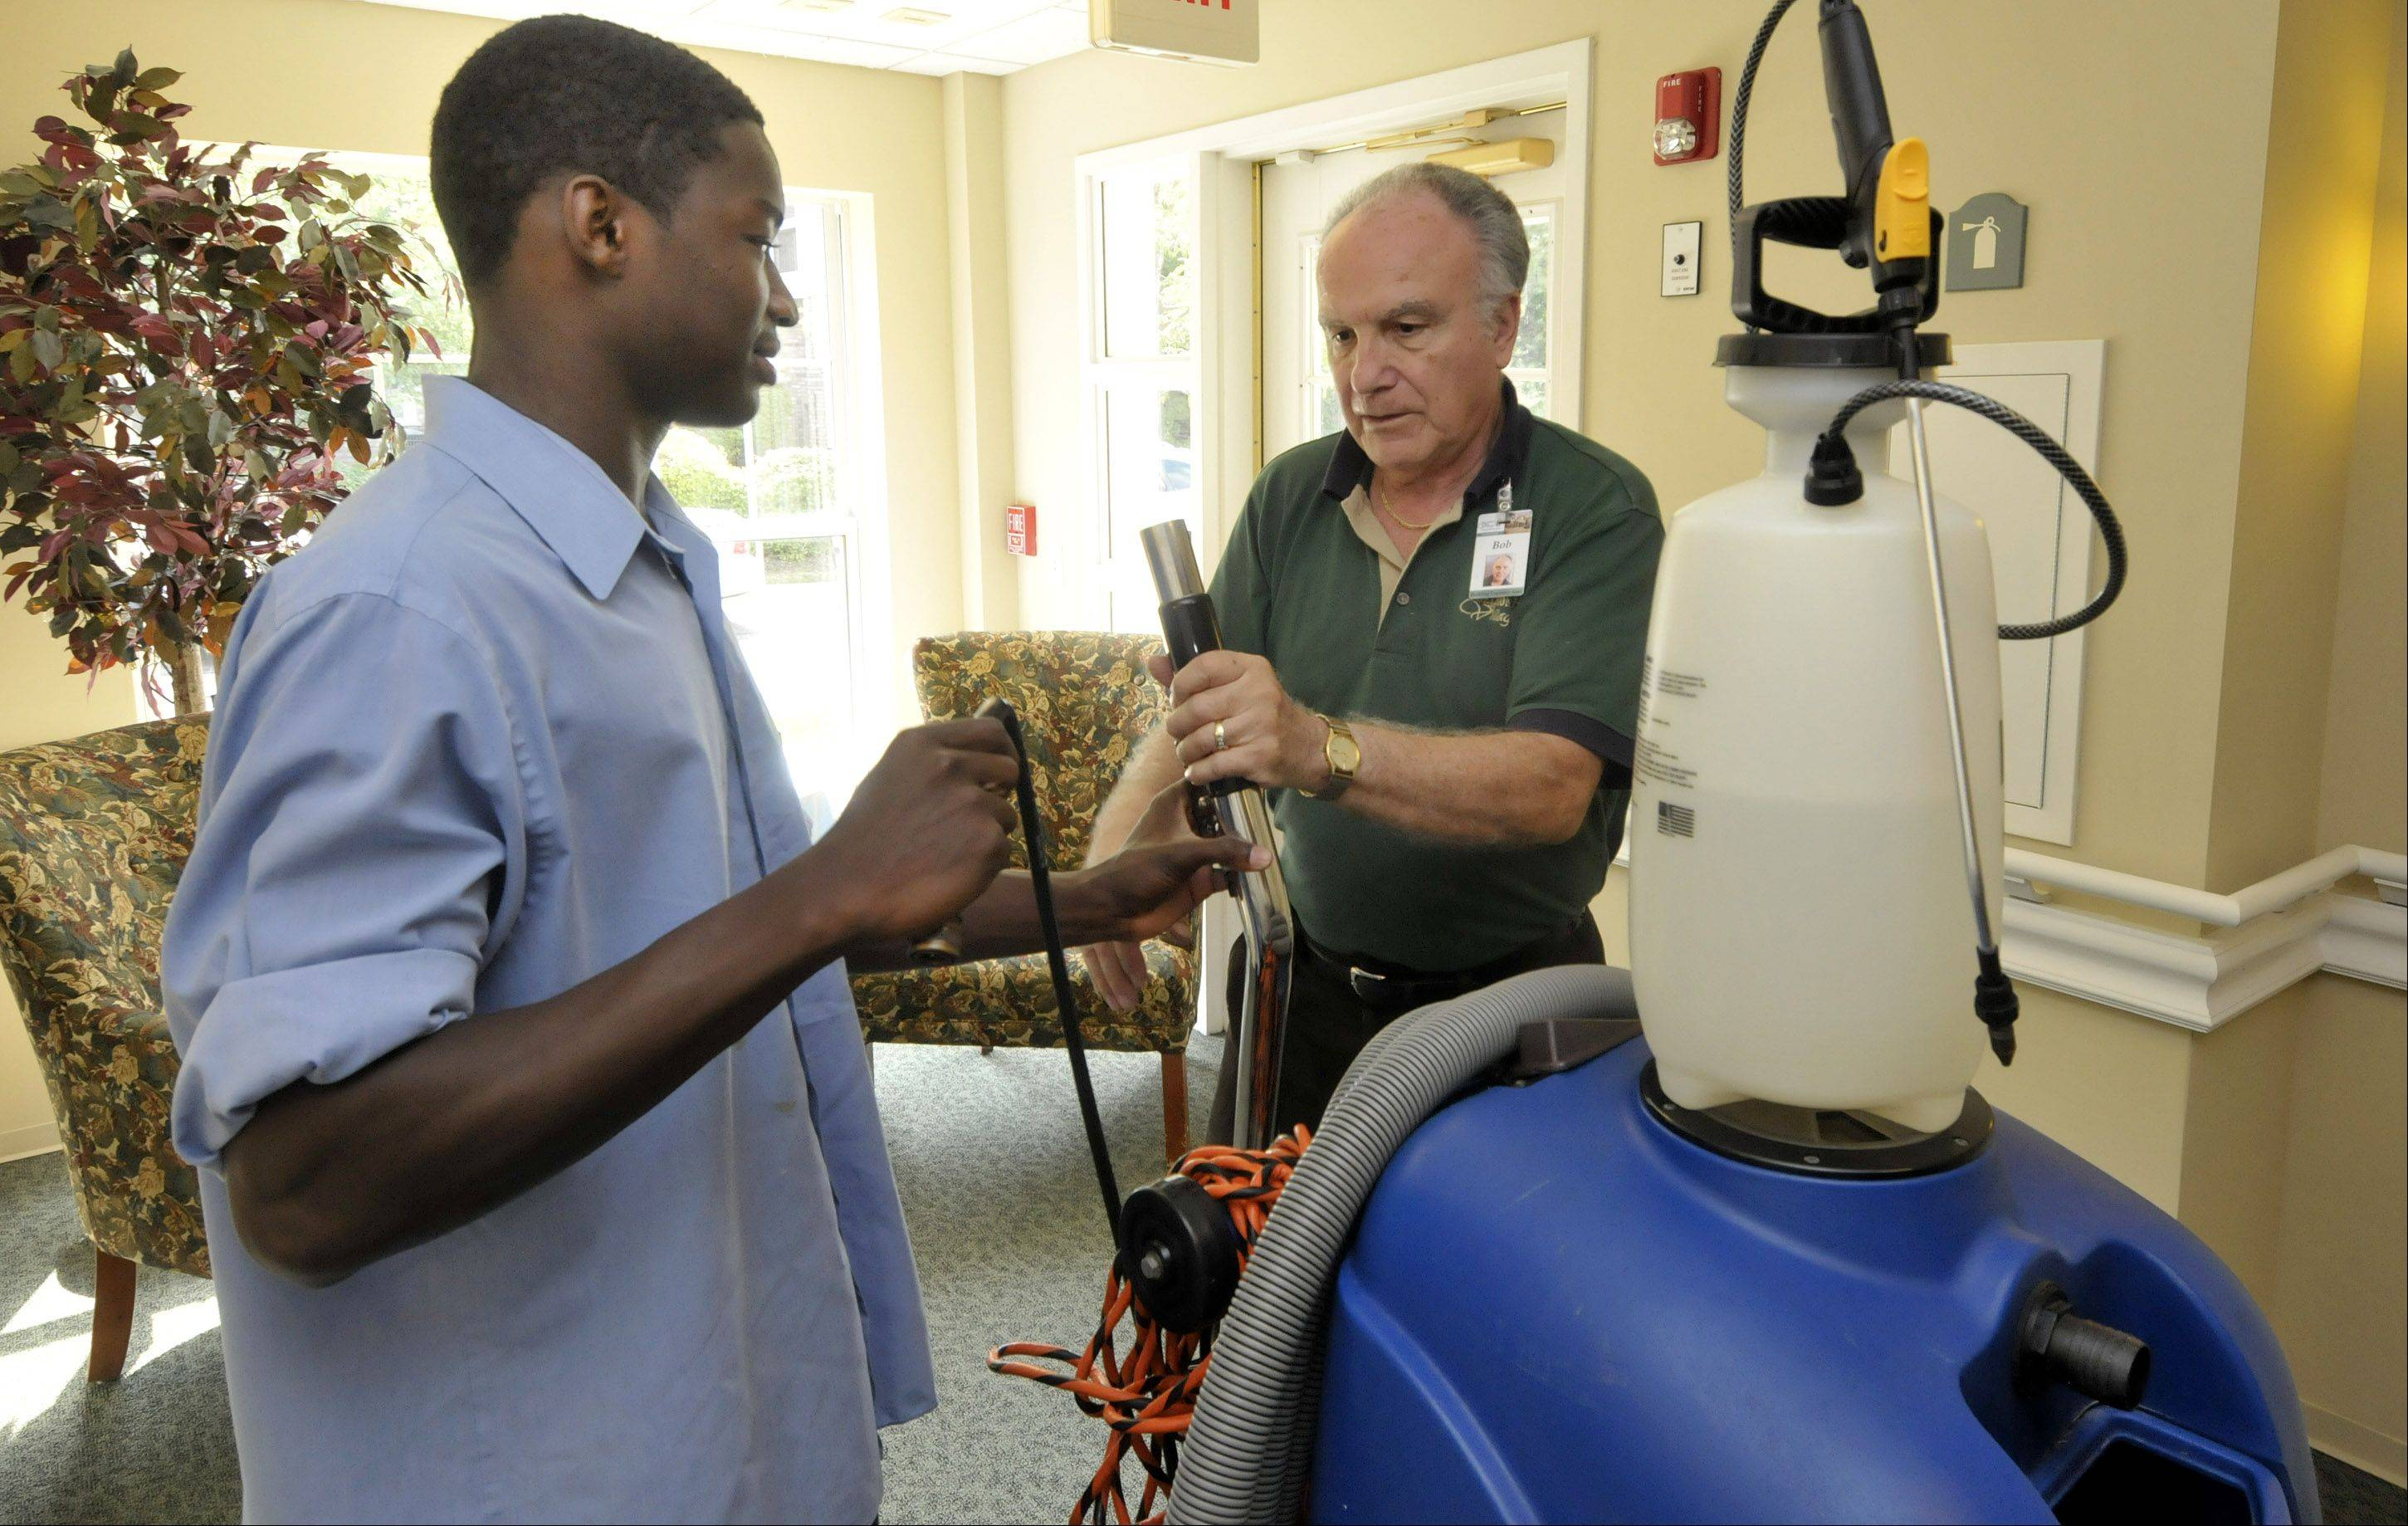 Xavier Da'Shawn Brown, left, receives job training and coaching with the SALT program to help him go on to college and succeed after high school. Here, he is assembling a carpet cleaner with Belmont Village's assistant building engineer Bob Shindle.